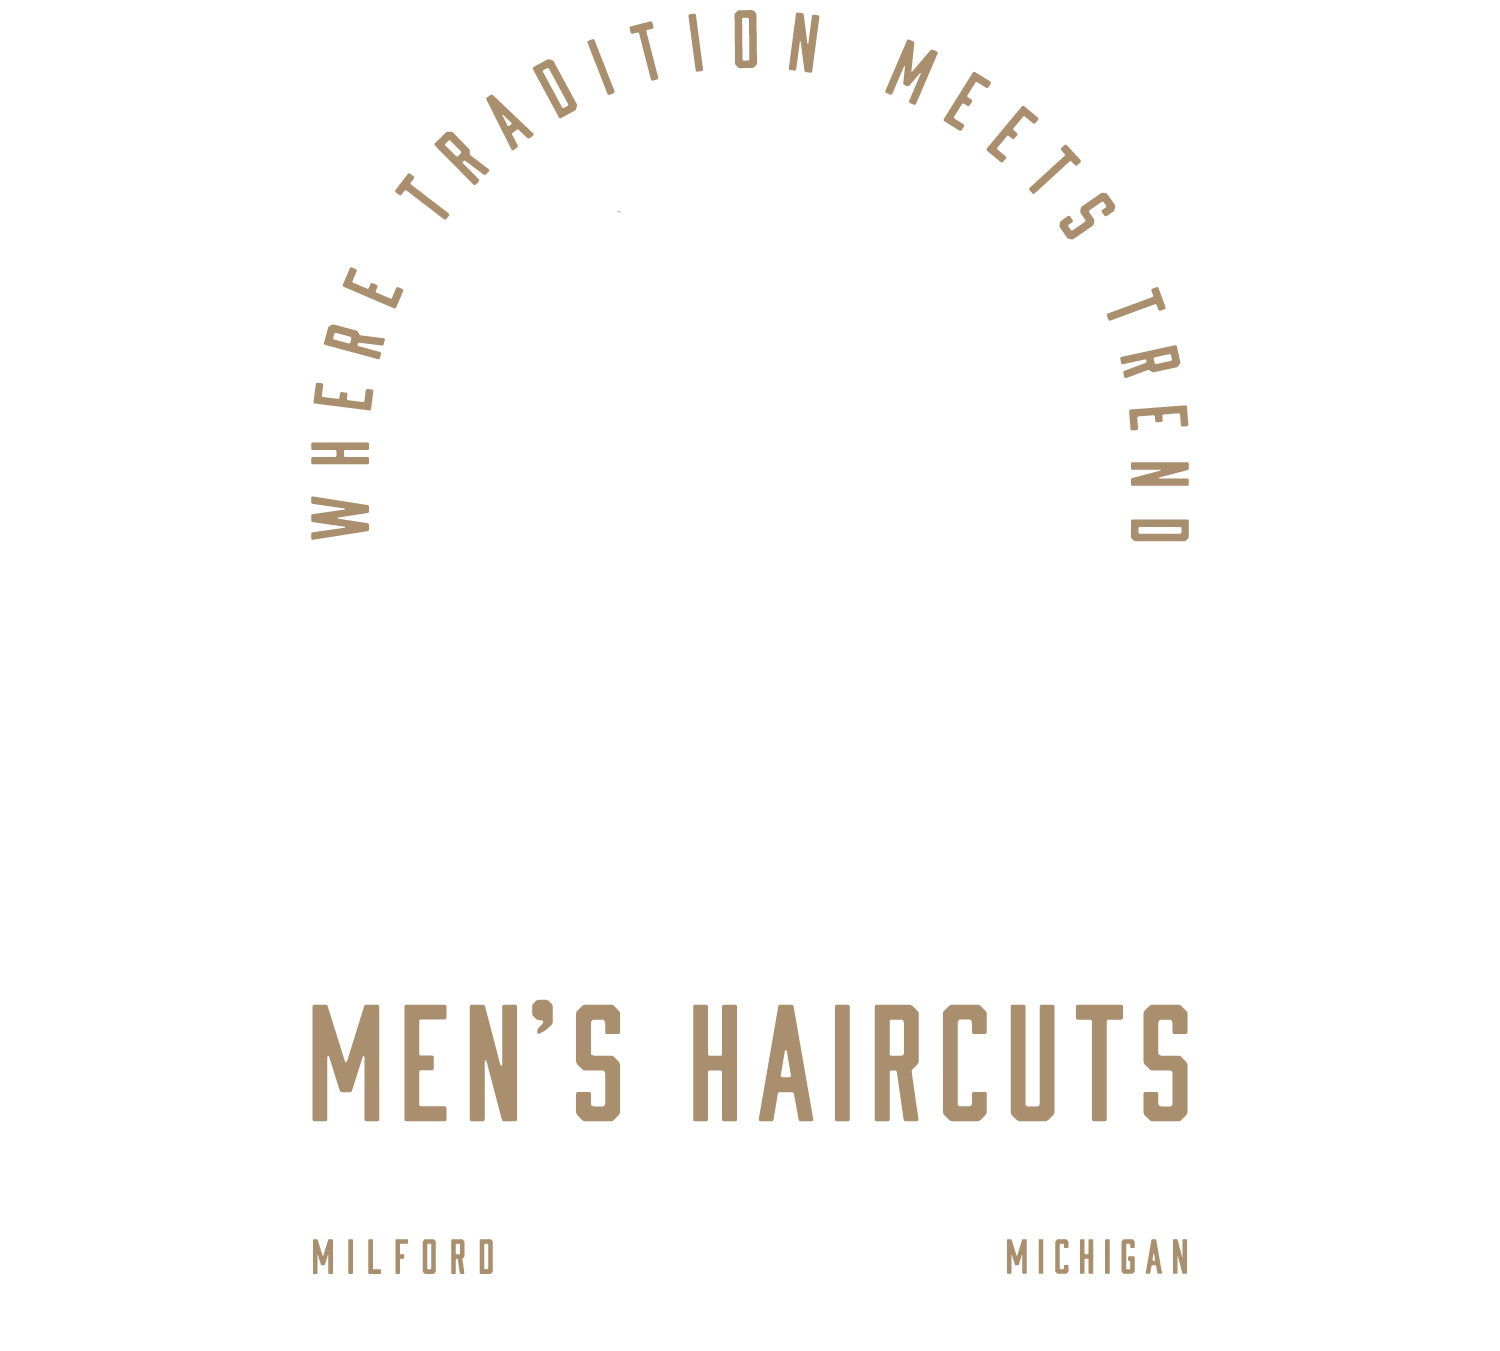 Classic Man Men's Haircuts | Milford, Michigan